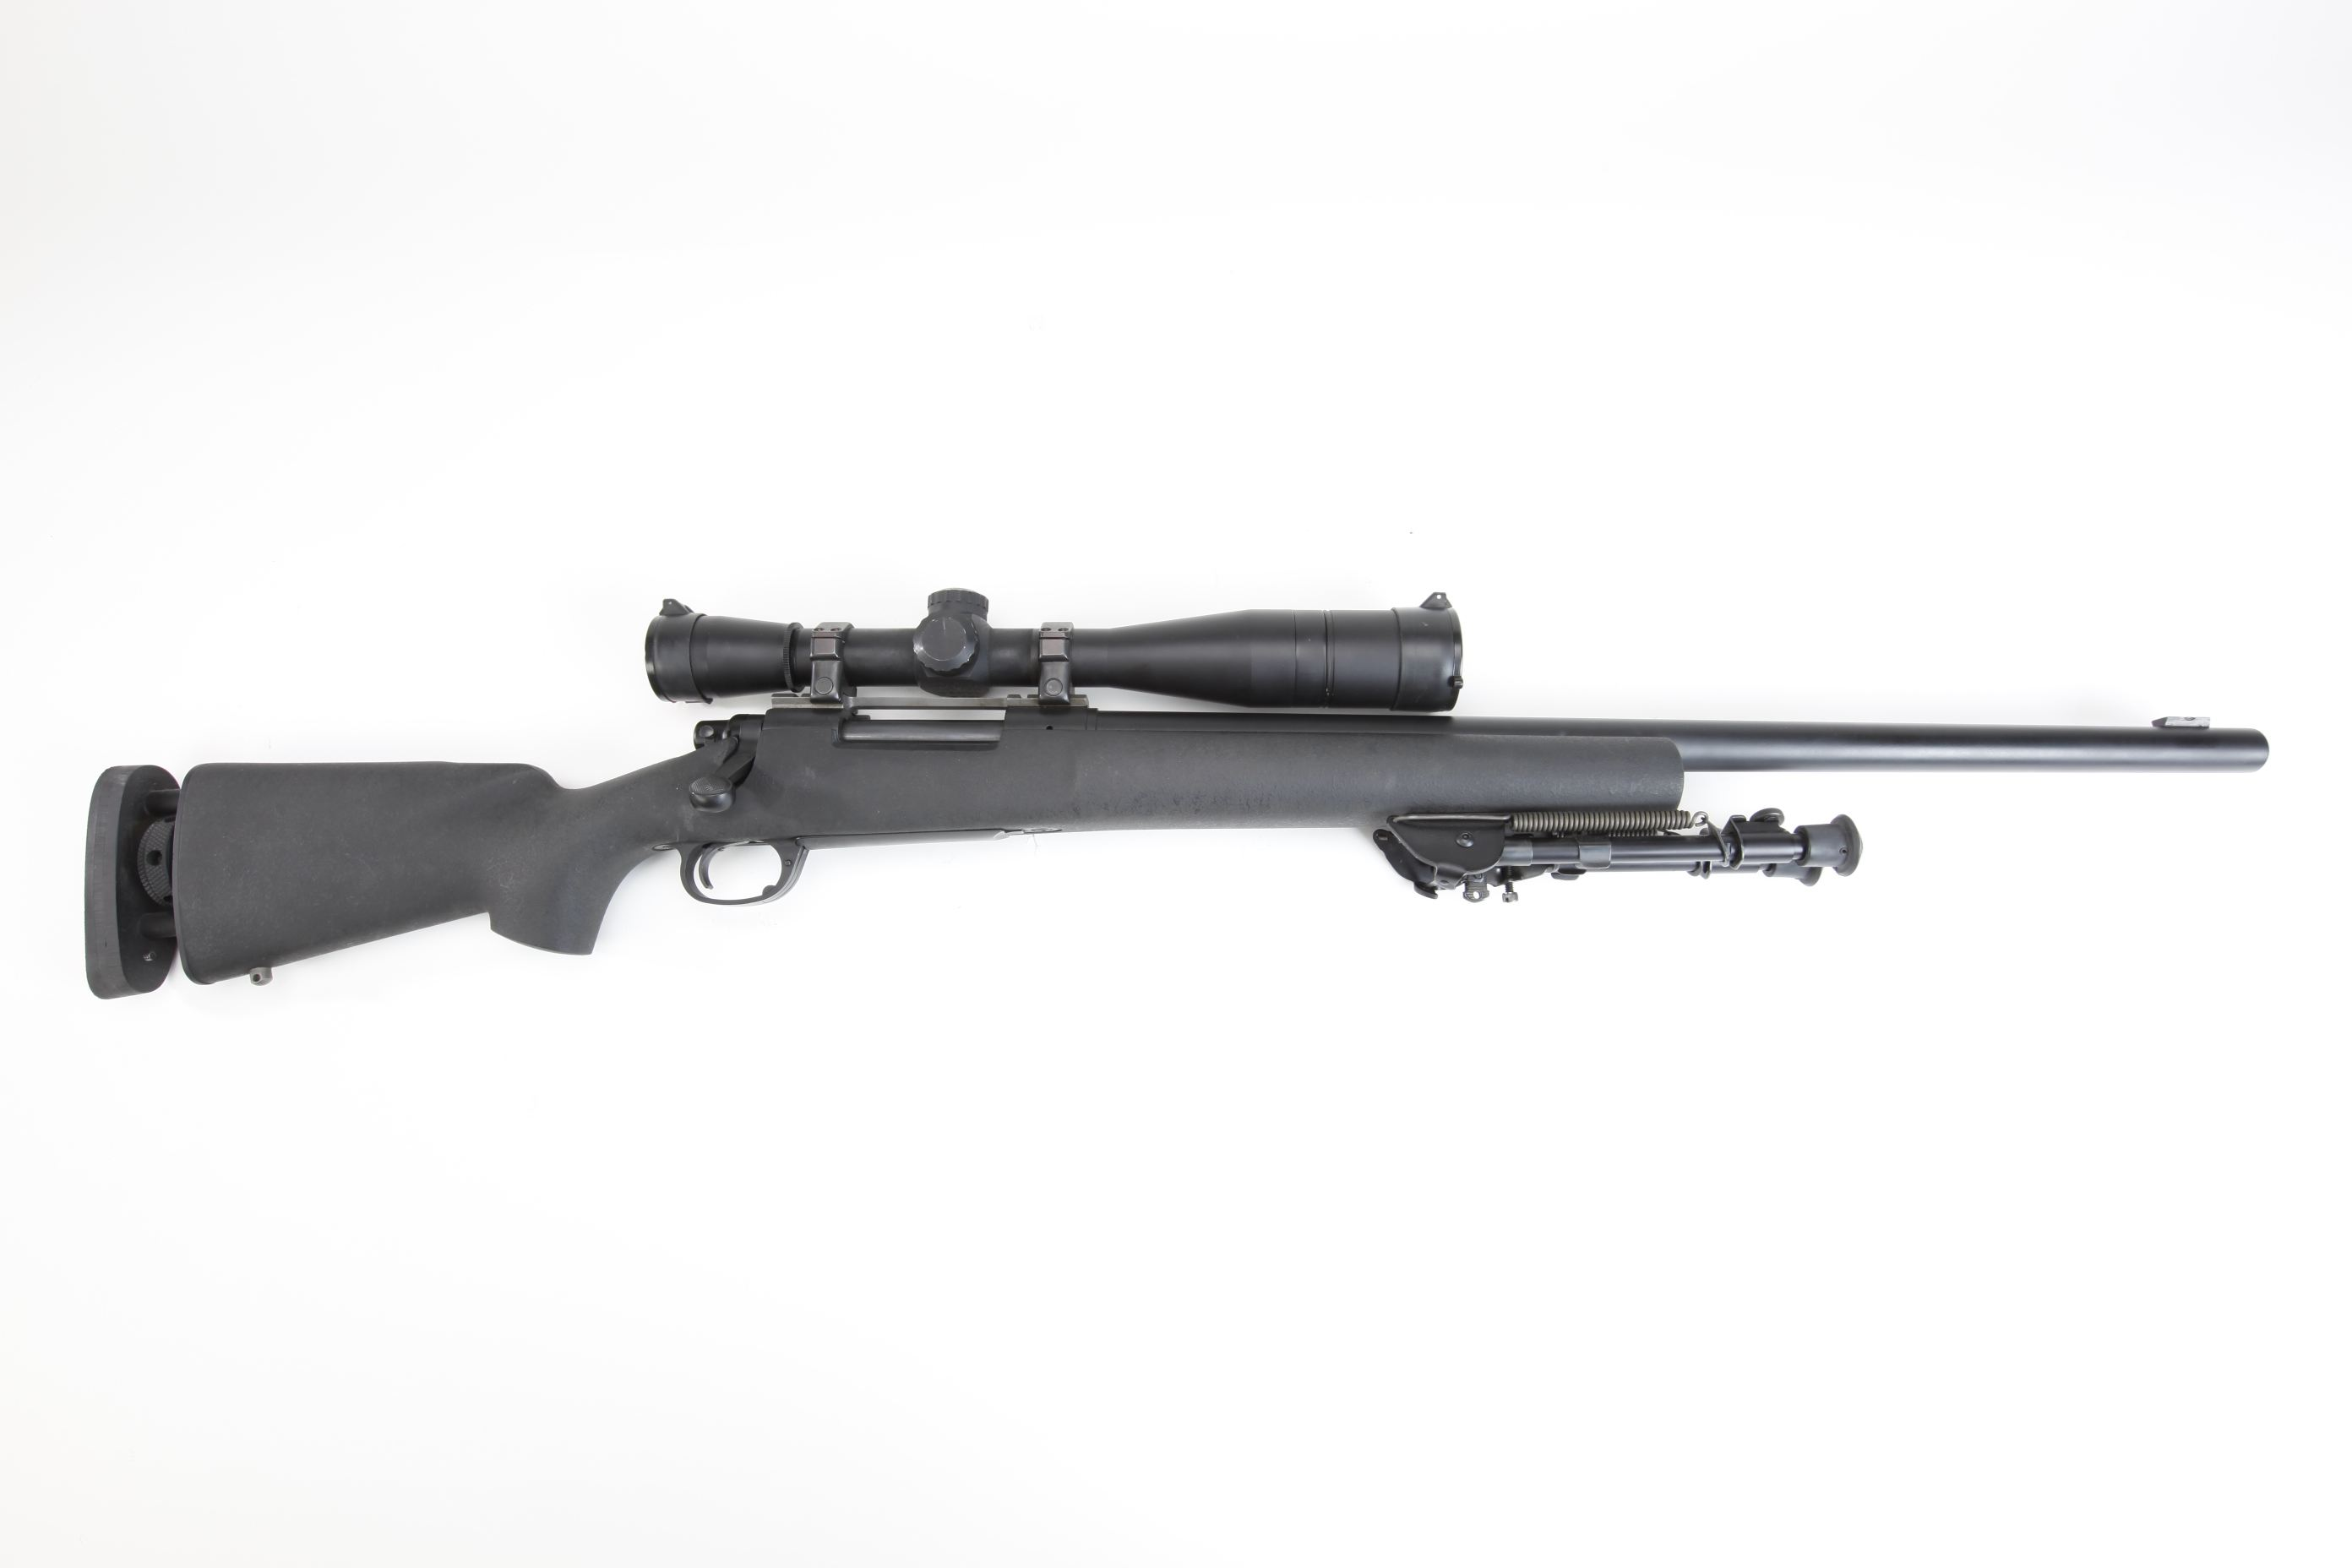 U.S. Remington M24 Sniper rifle